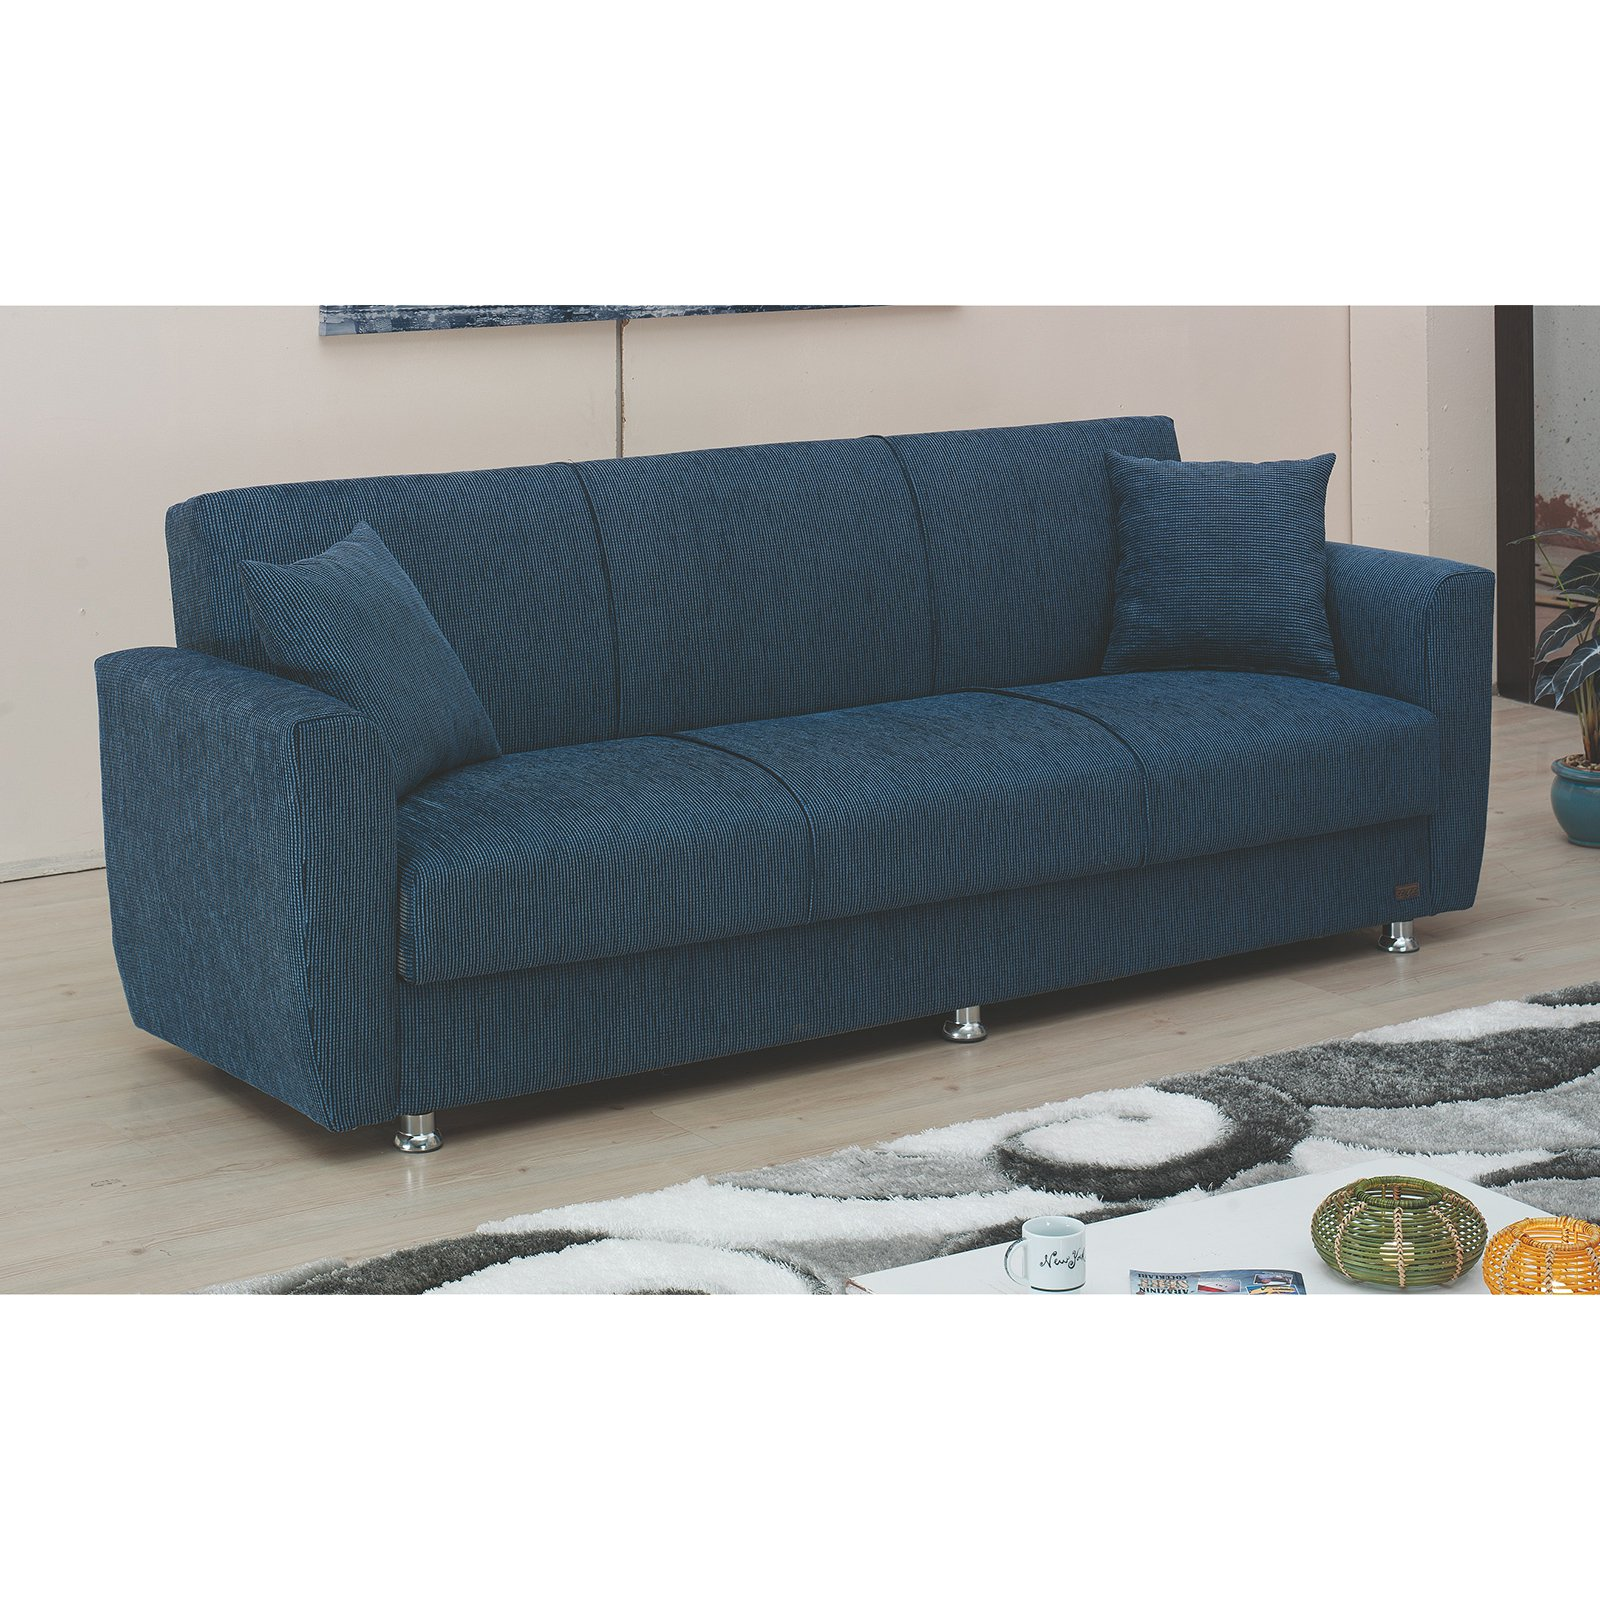 Empire Furniture USA Miami Convertible Sofa